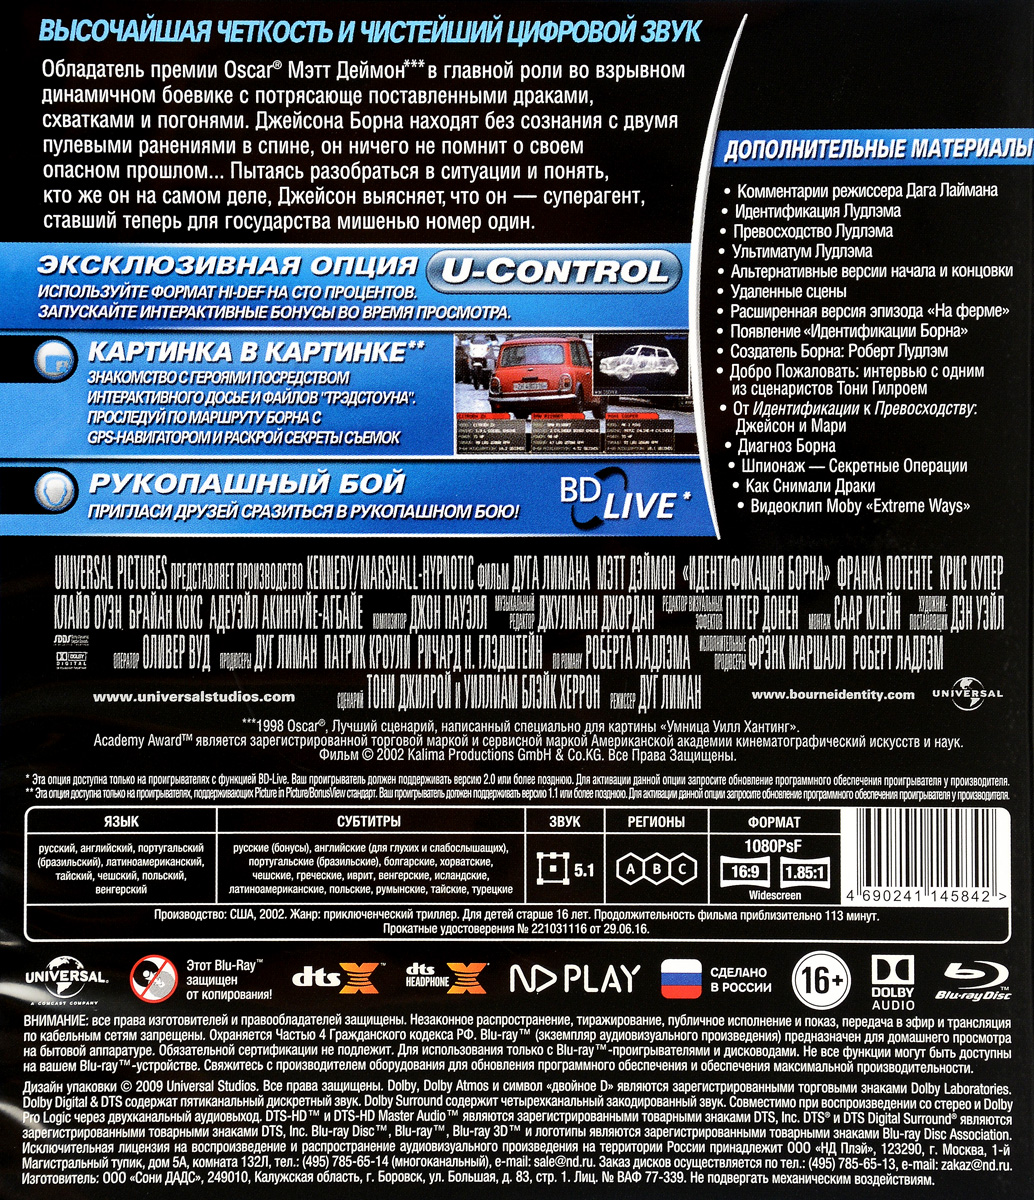 Идентификация Борна (Blu-ray) Hypnotic,Kalima Productions GmbH& Co. KG,Stillking,The Kennedy/Marshall Company,Universal Pictures